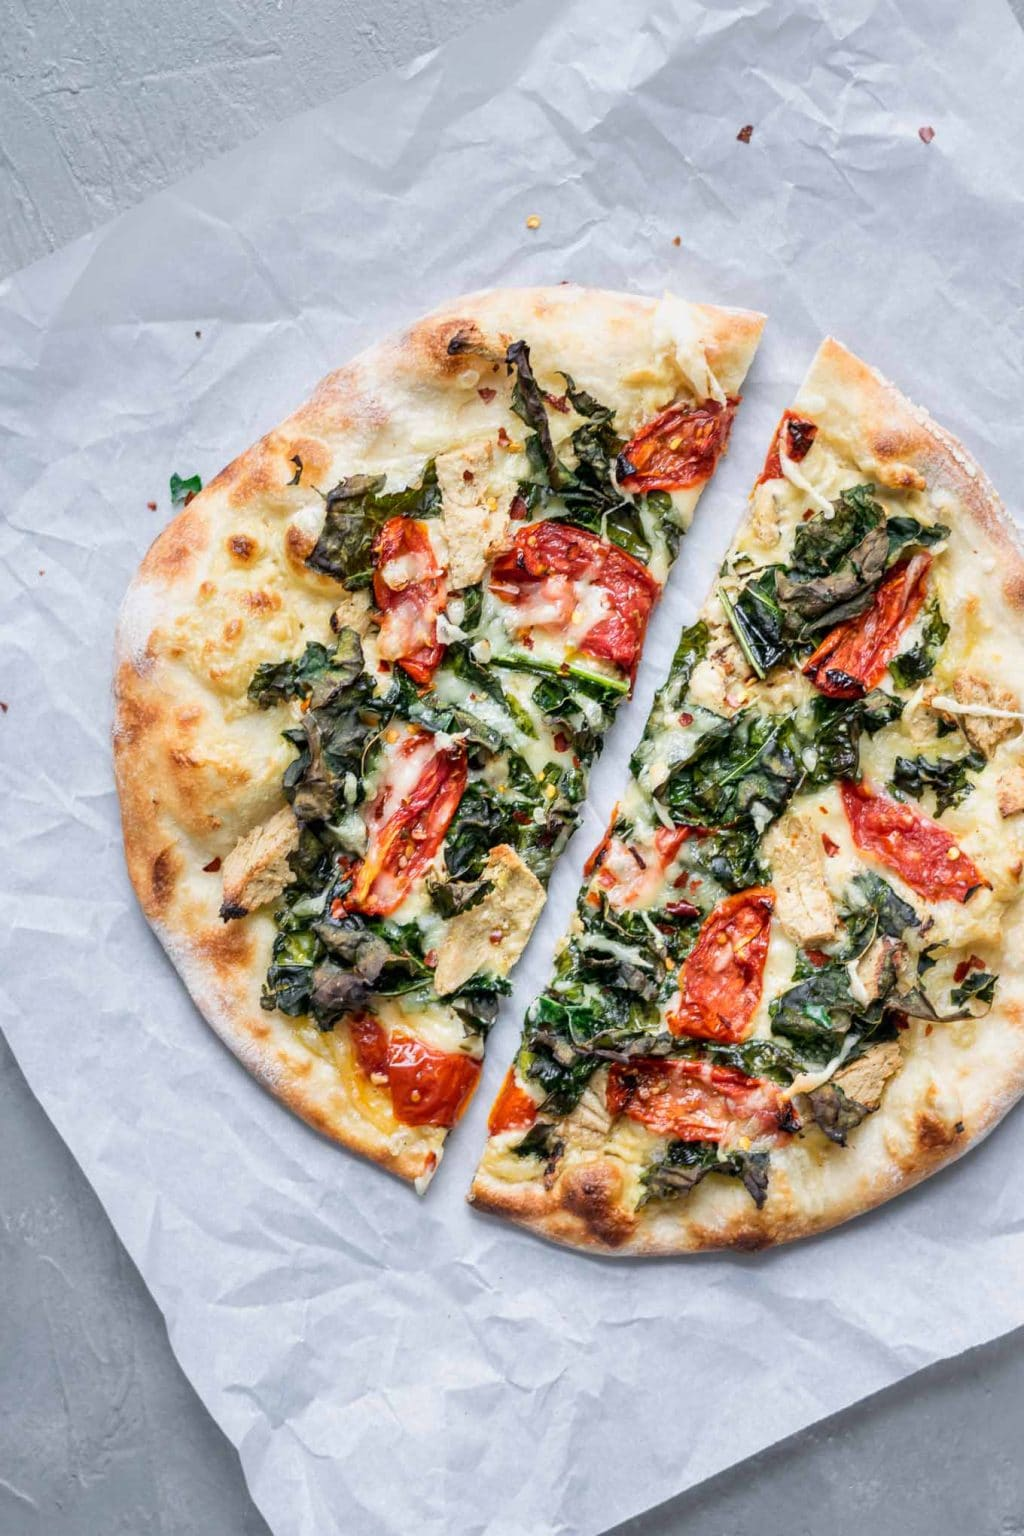 Crispy kale, roasted tomato, and vegan chicken white sauce pizza cut in half